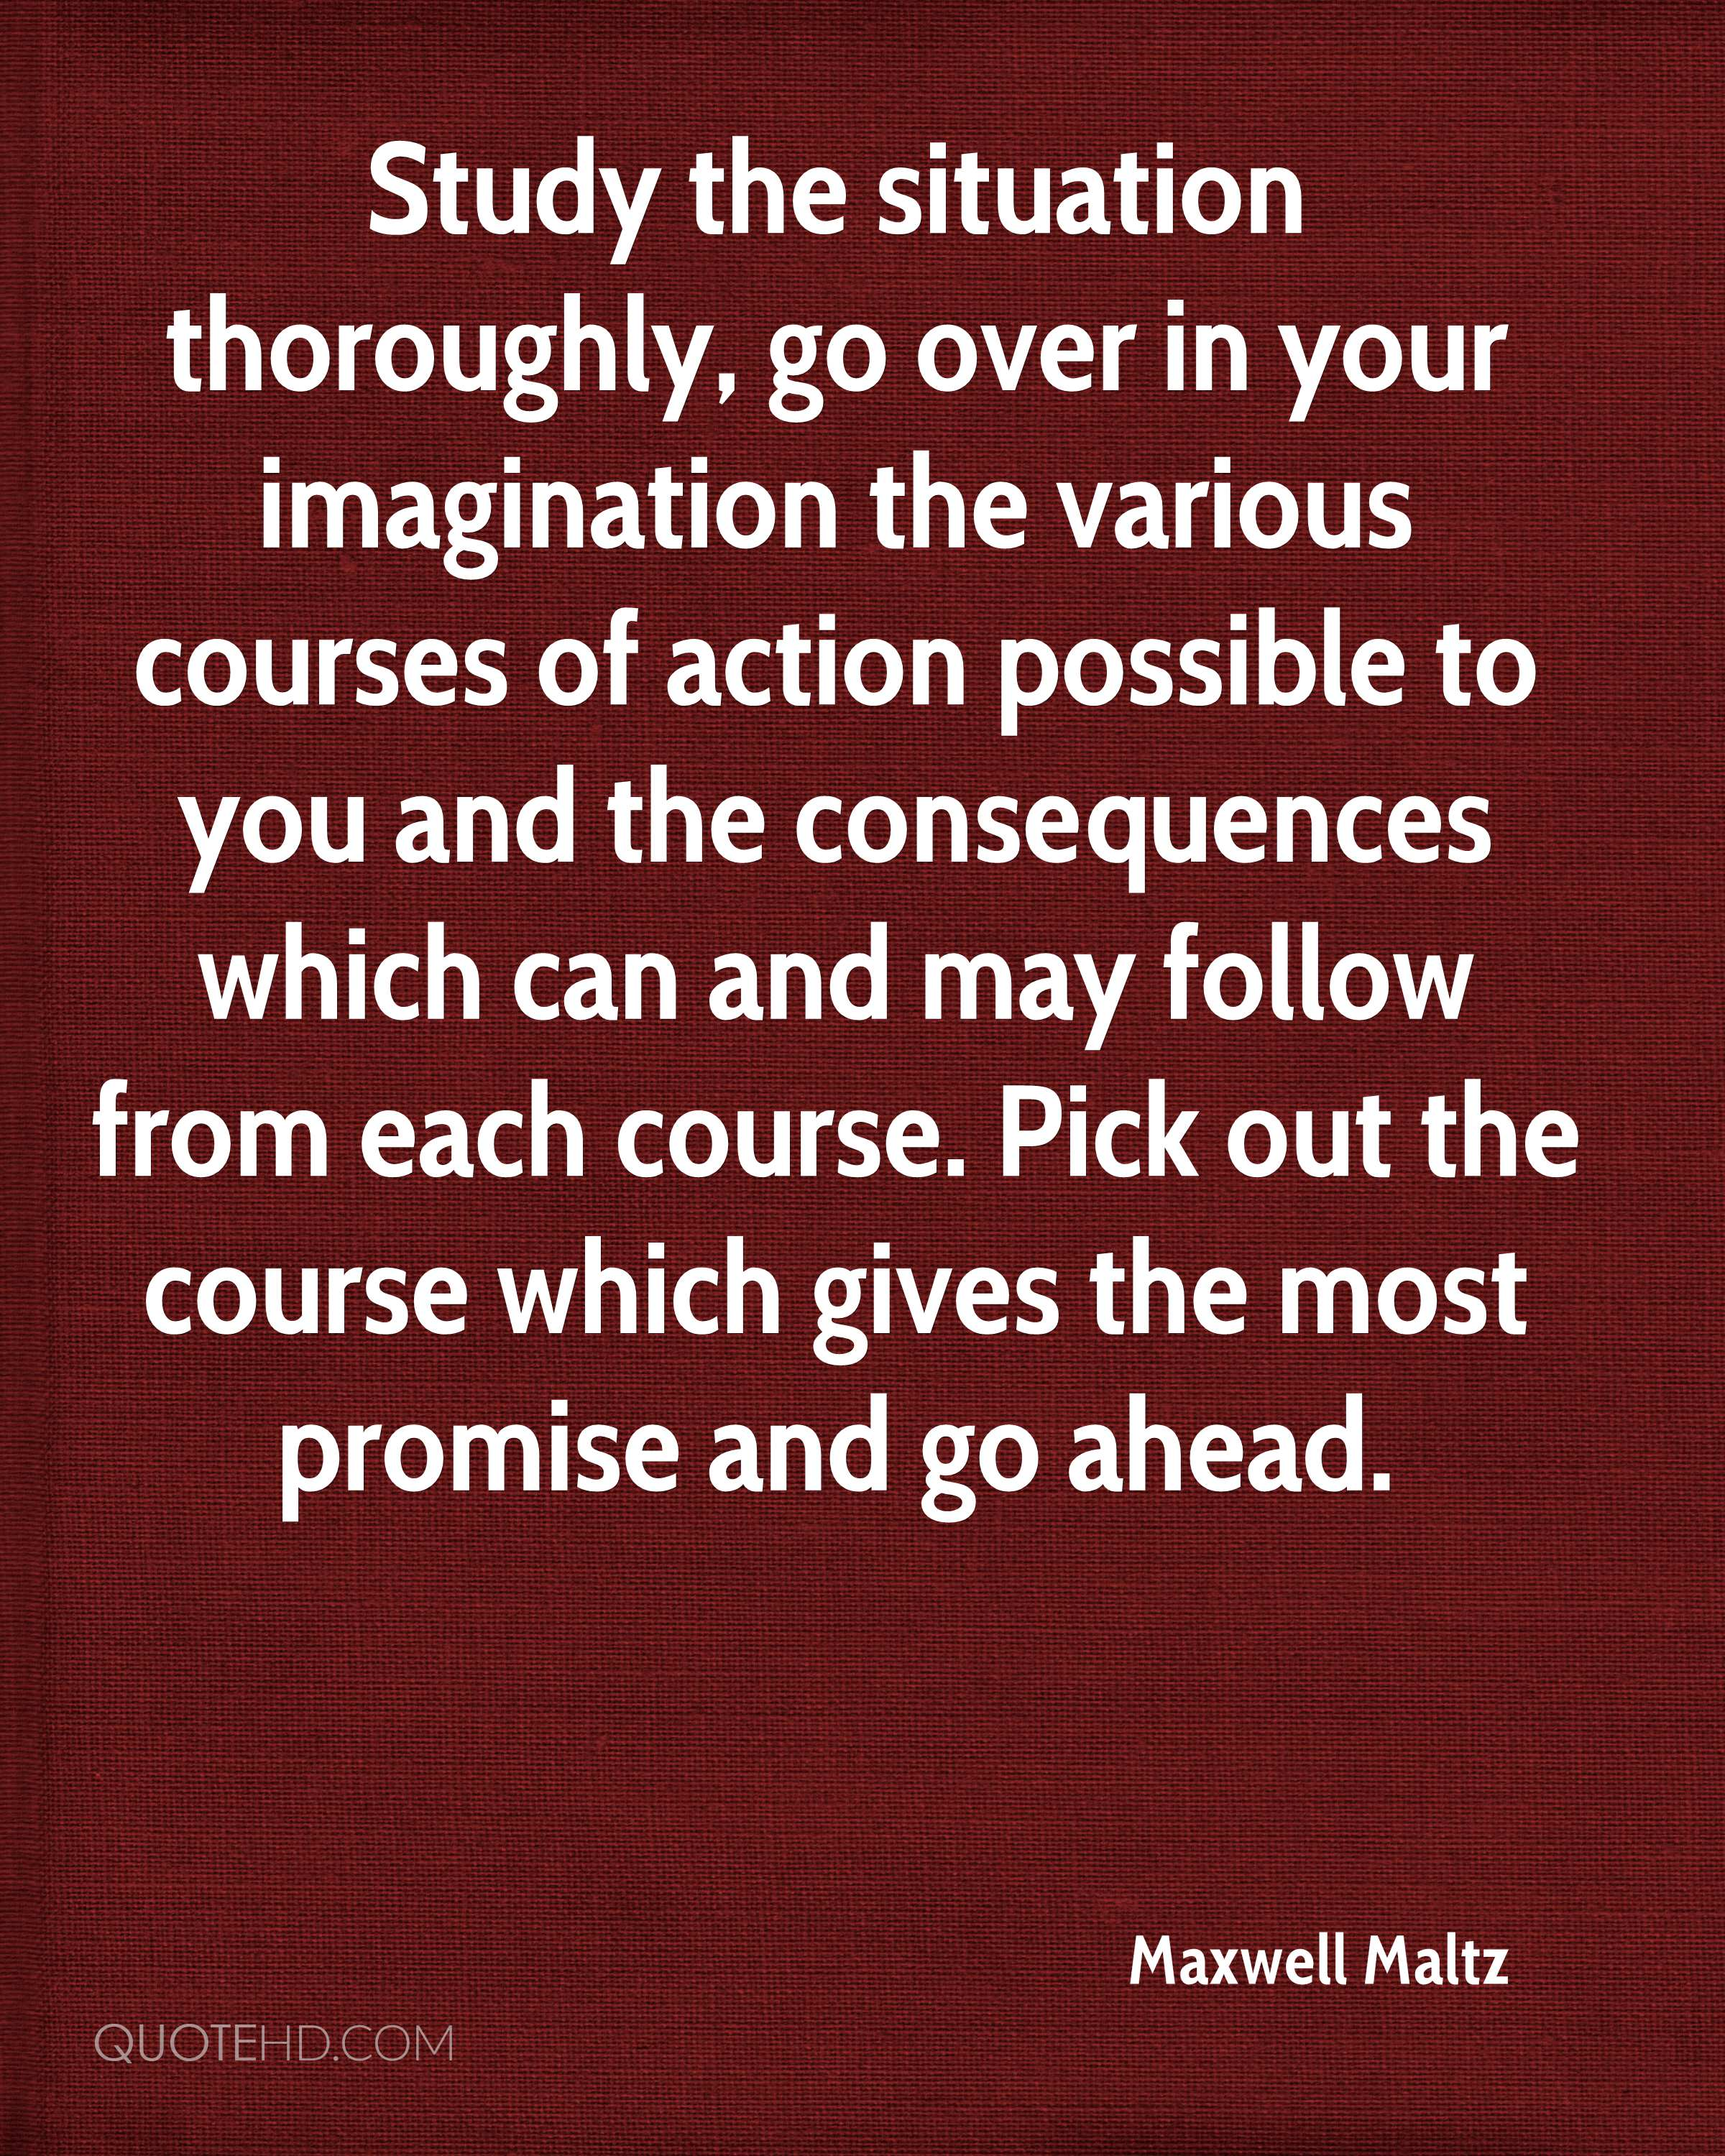 Study the situation thoroughly, go over in your imagination the various courses of action possible to you and the consequences which can and may follow from each course. Pick out the course which gives the most promise and go ahead.